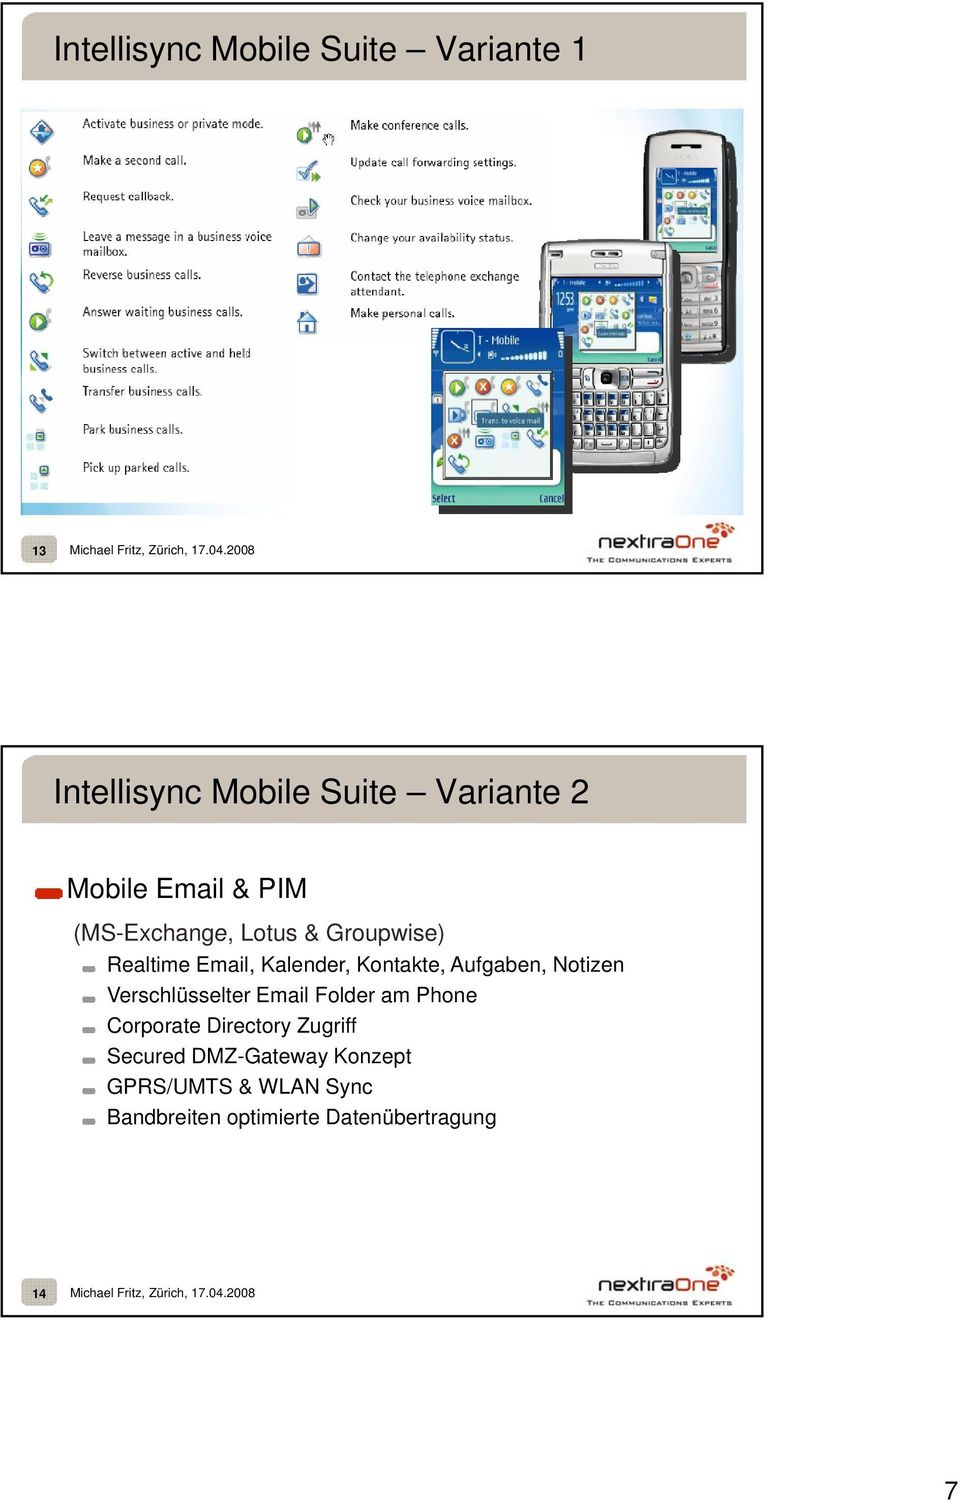 Intellisync Mobile Suite Variante 2 Mobile Email & PIM (MS-Exchange Exchange, Lotus & Groupwise) Realtime Email, Kalender, Kontakte, Aufgaben, Notizen